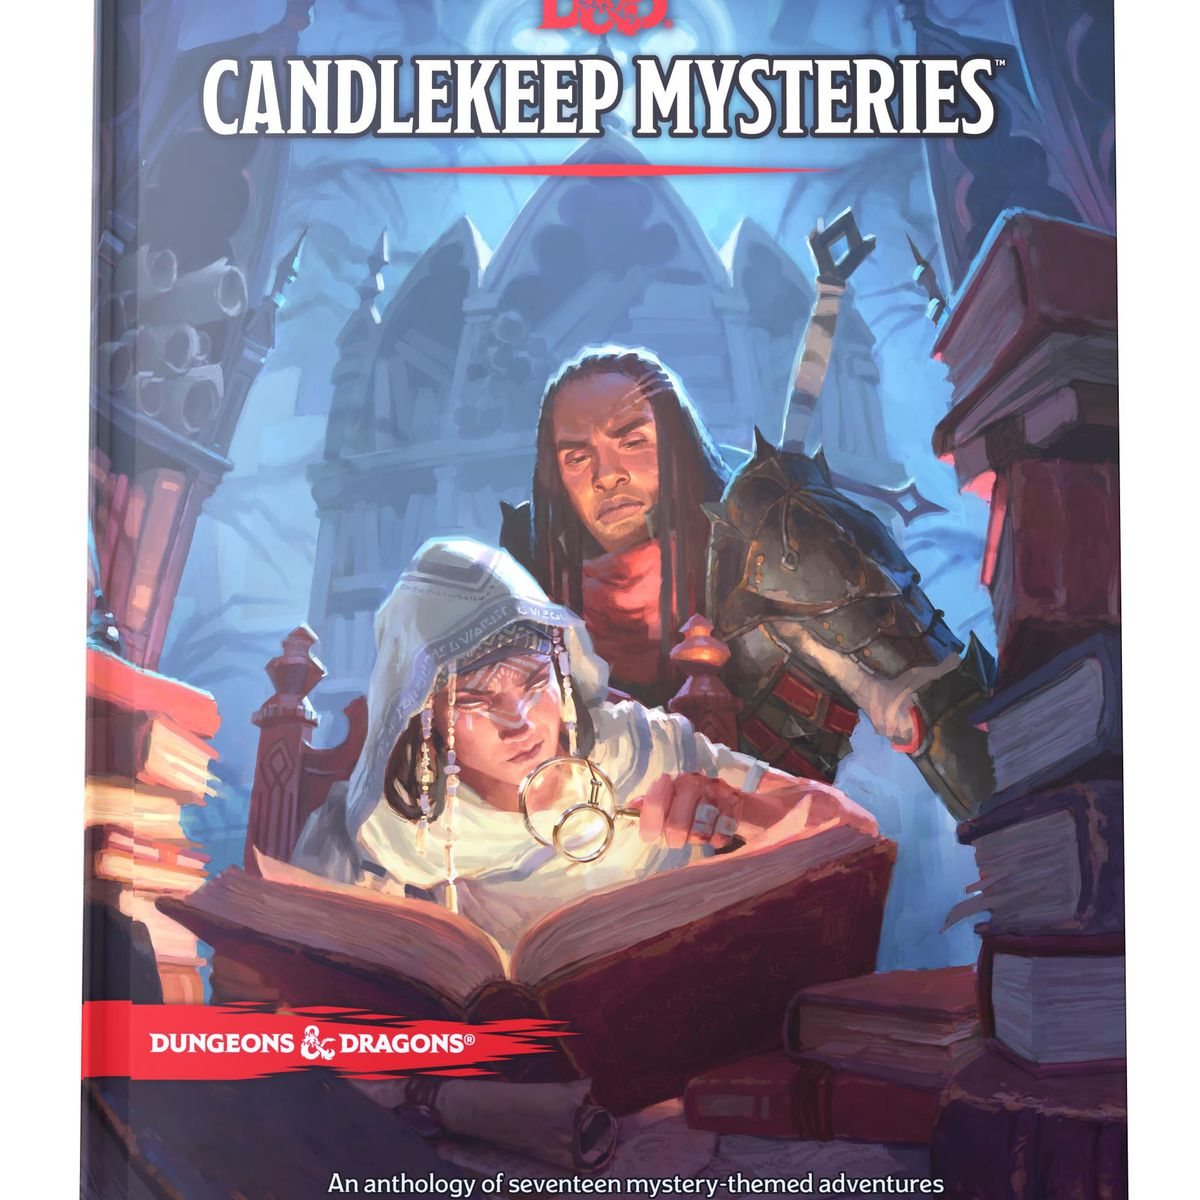 Candlekeep Mysteries preview: 'Lore of Lurue' brings D&D back in time to a magical forest